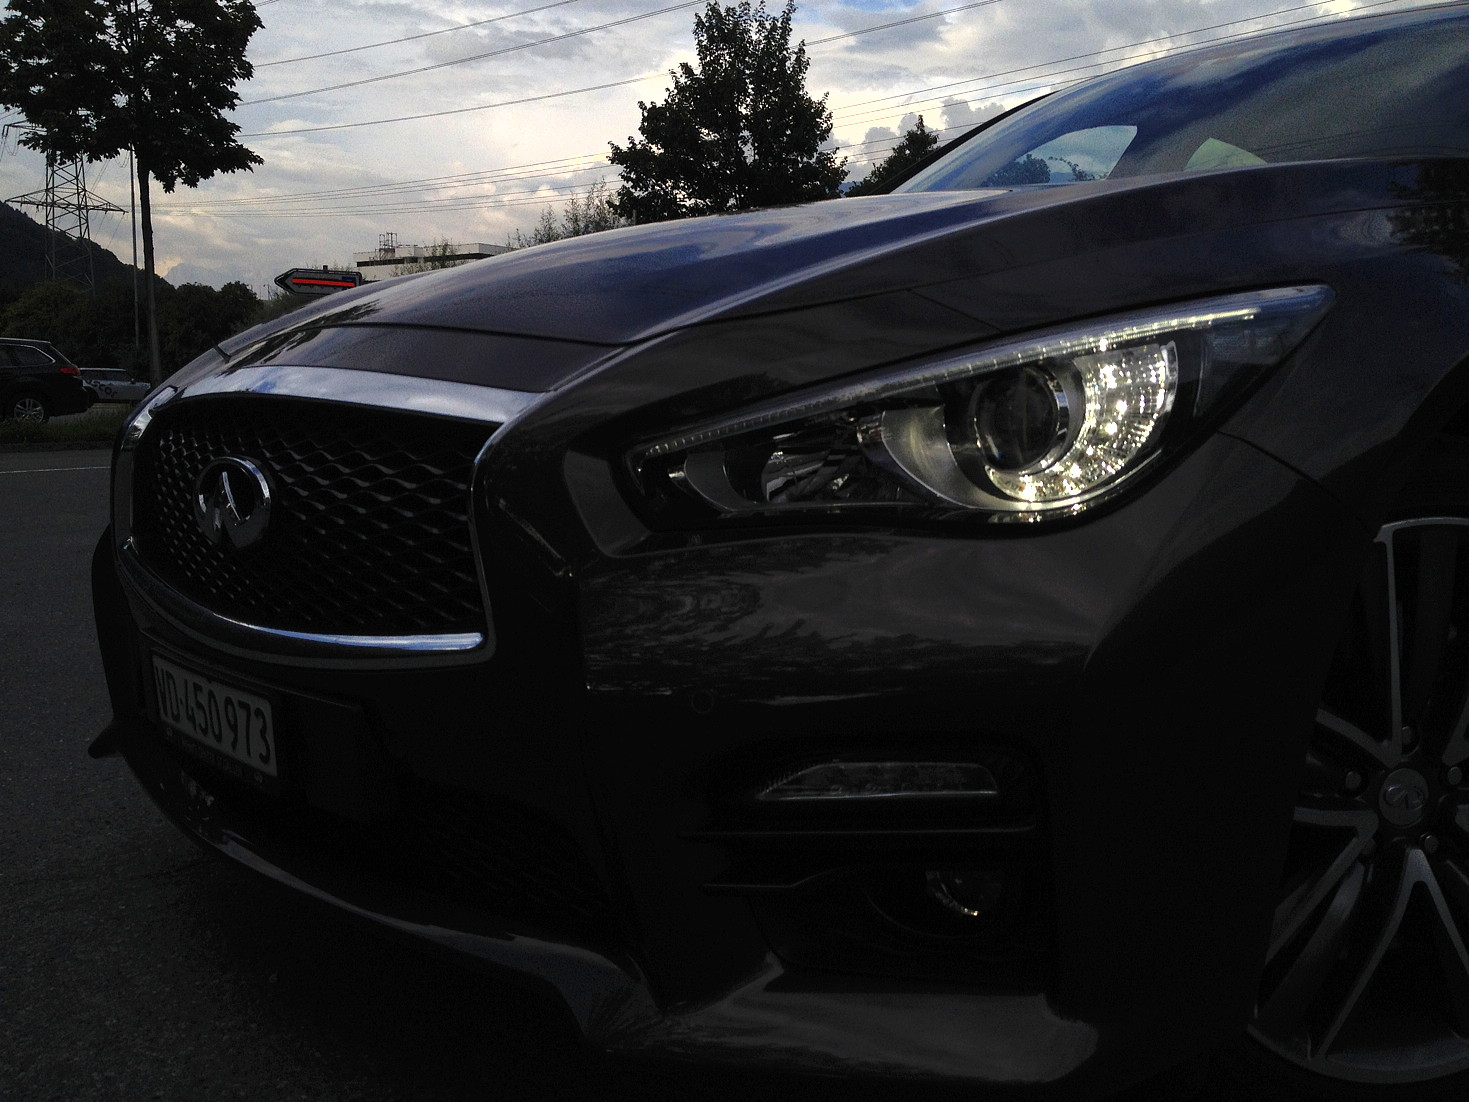 Infiniti Q50S Hybrid: It's magic